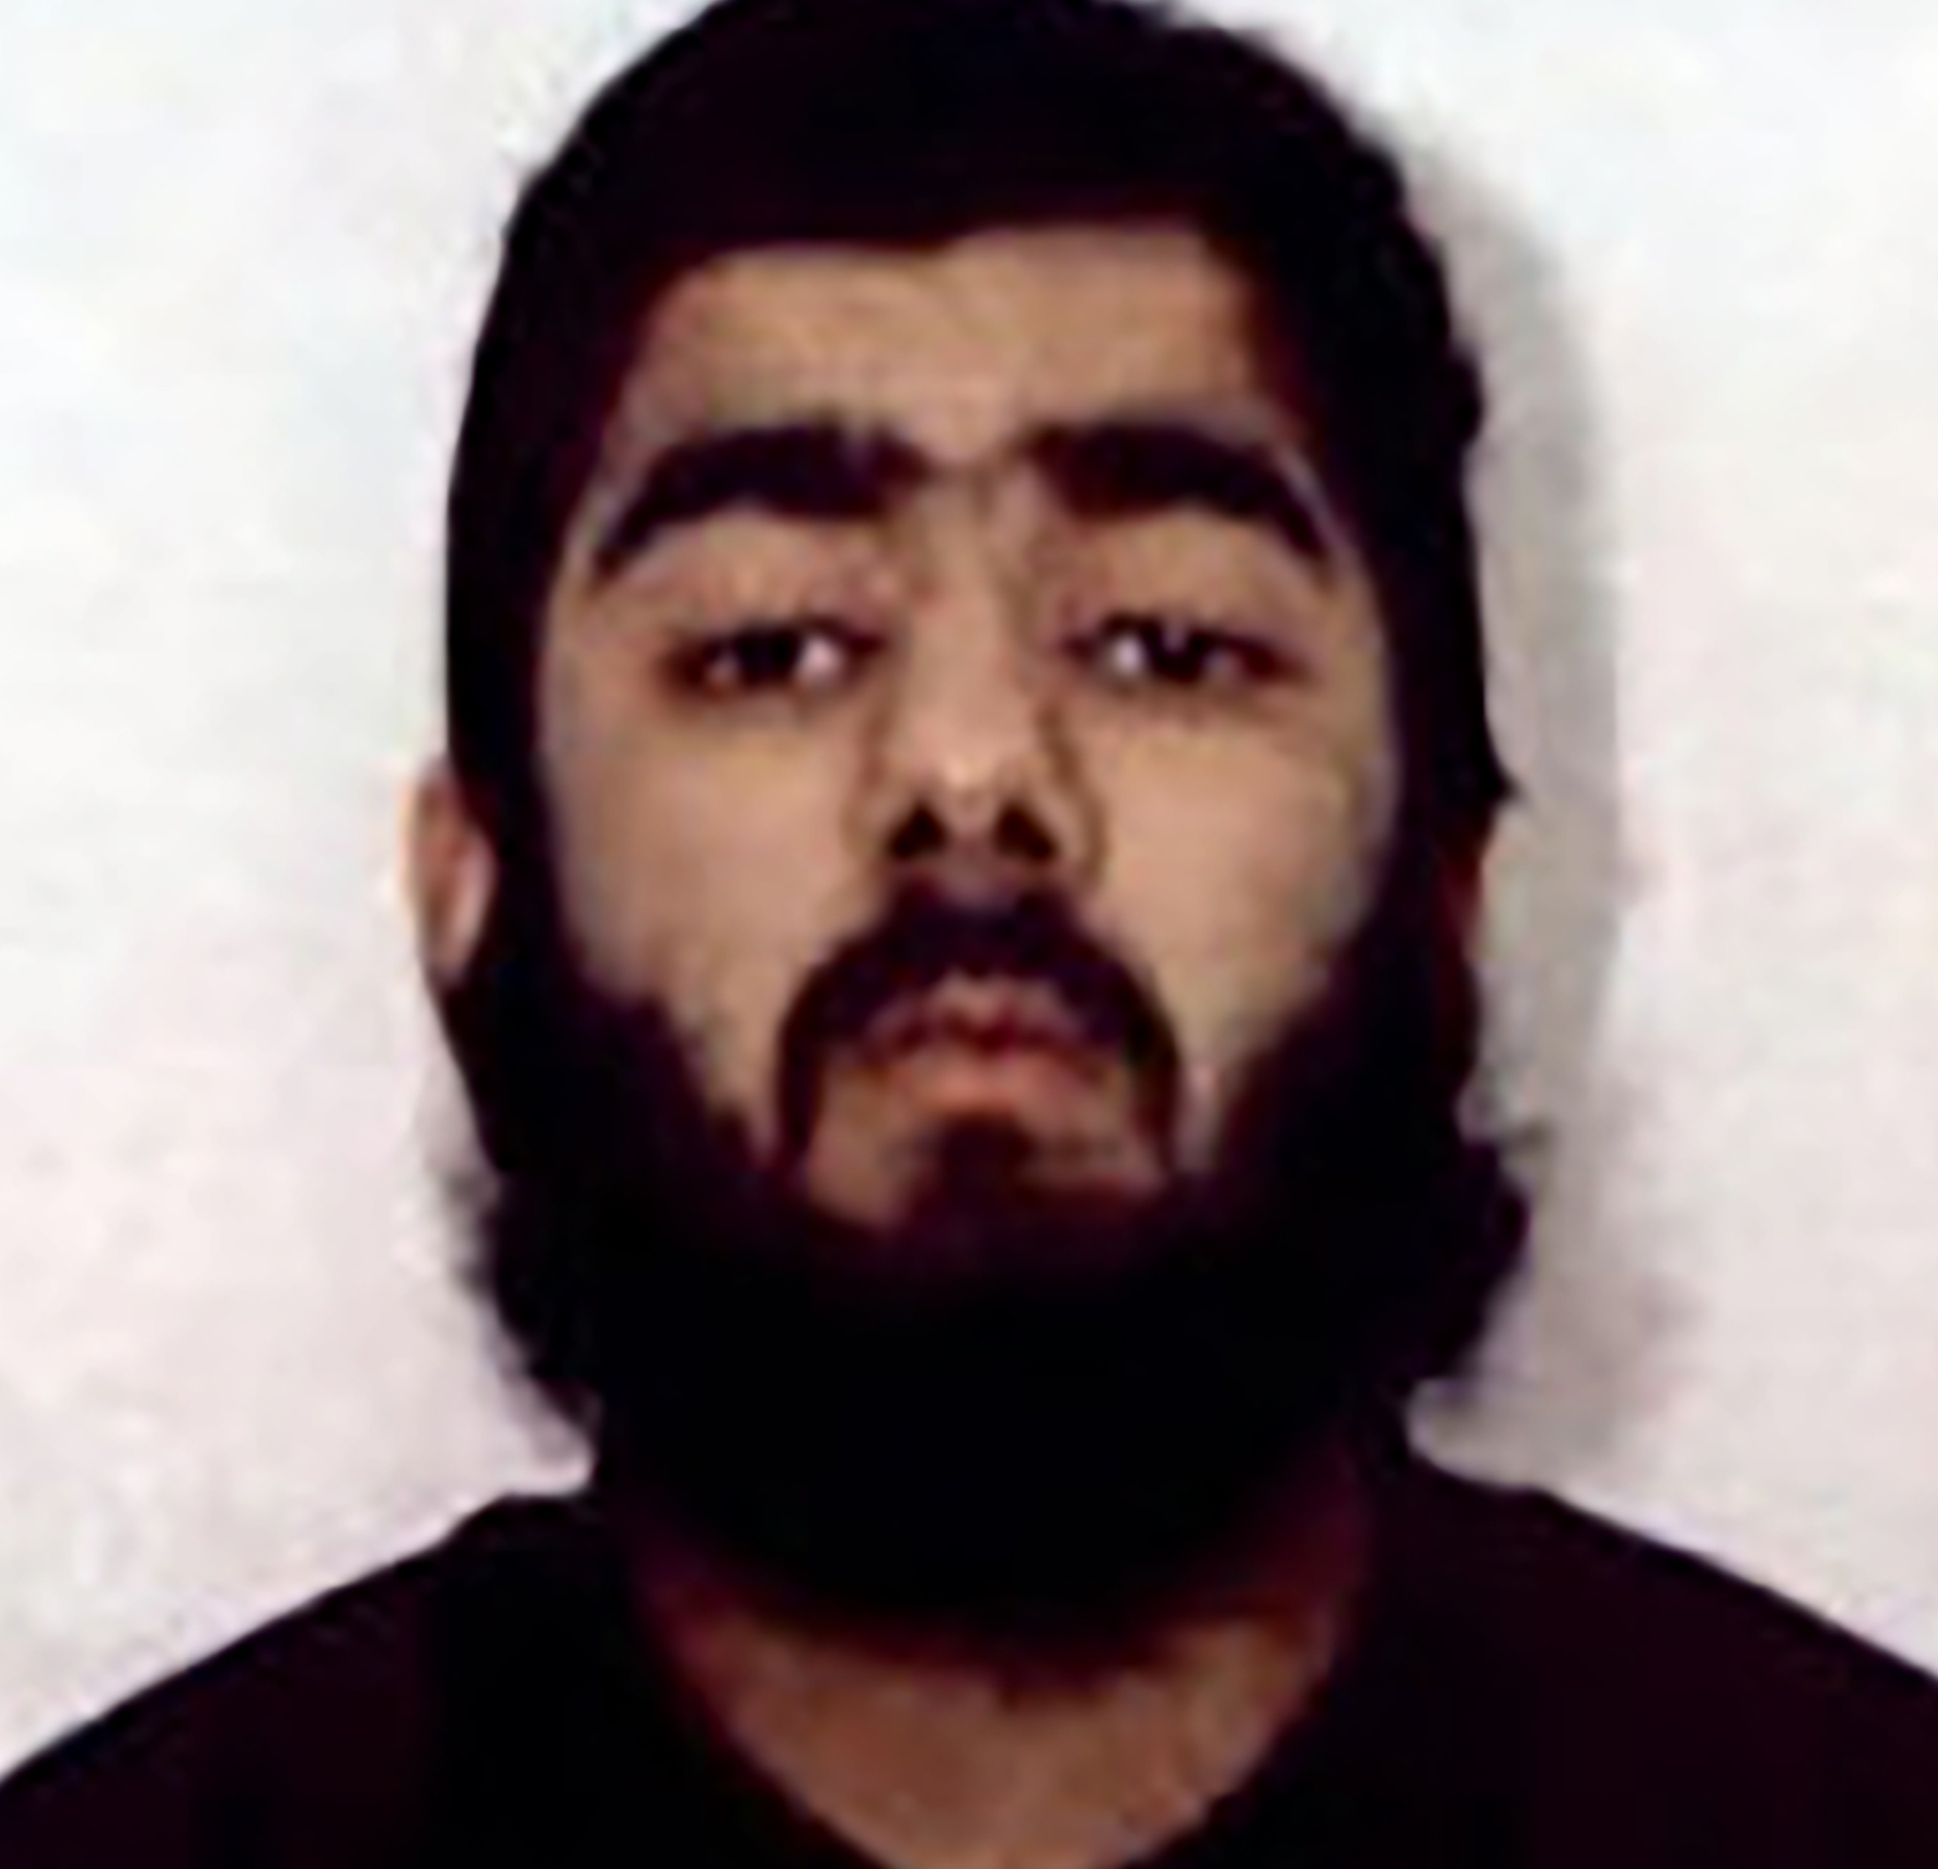 UK police: Suspect in London attack had served time for terrorism